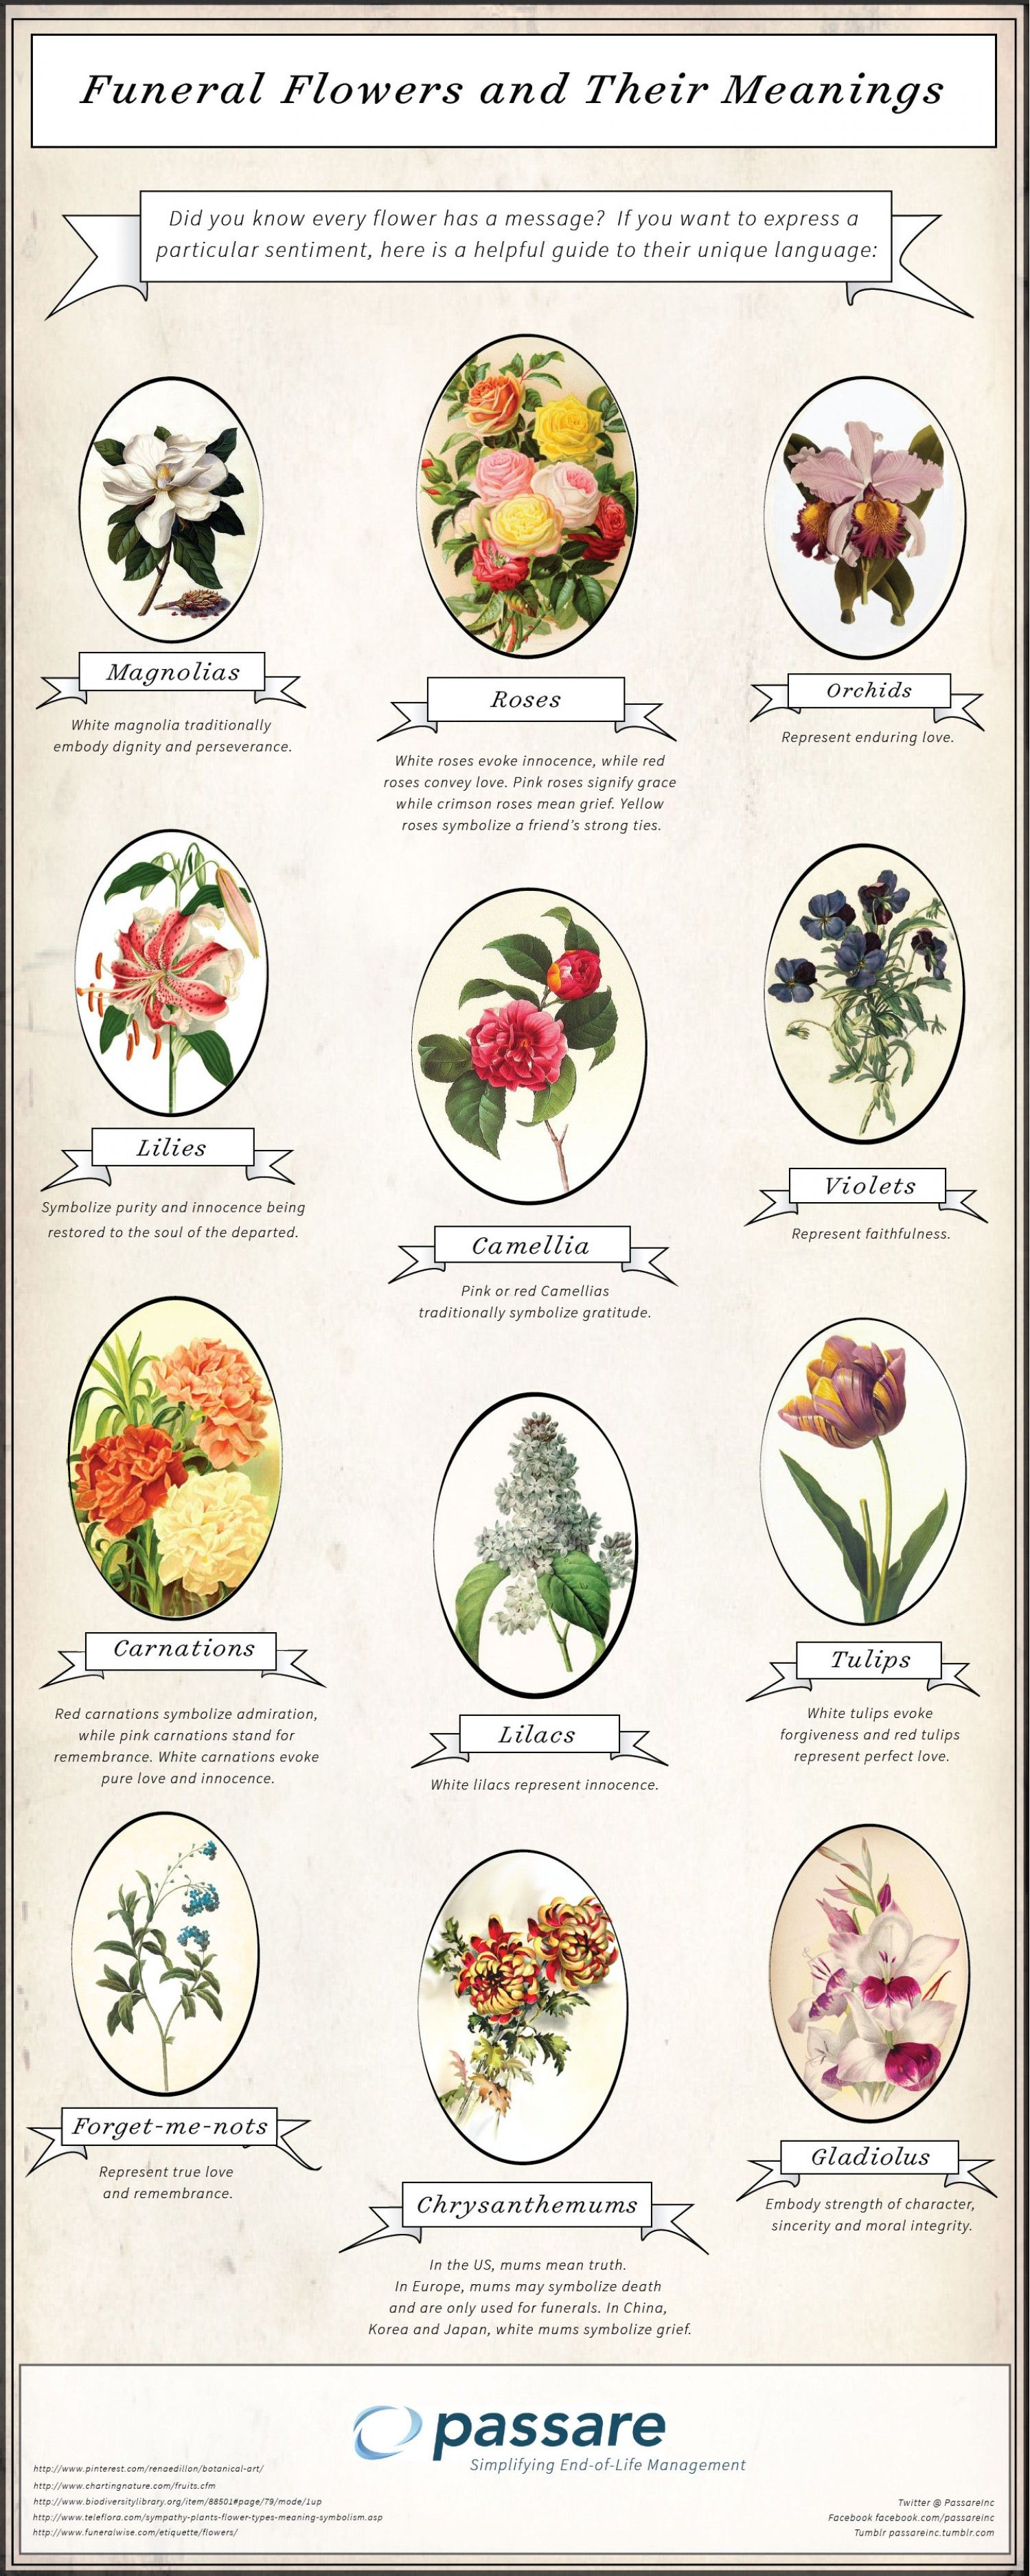 Funeral flowers and their meanings infographic best infographics funeral flowers and their meanings infographic buycottarizona